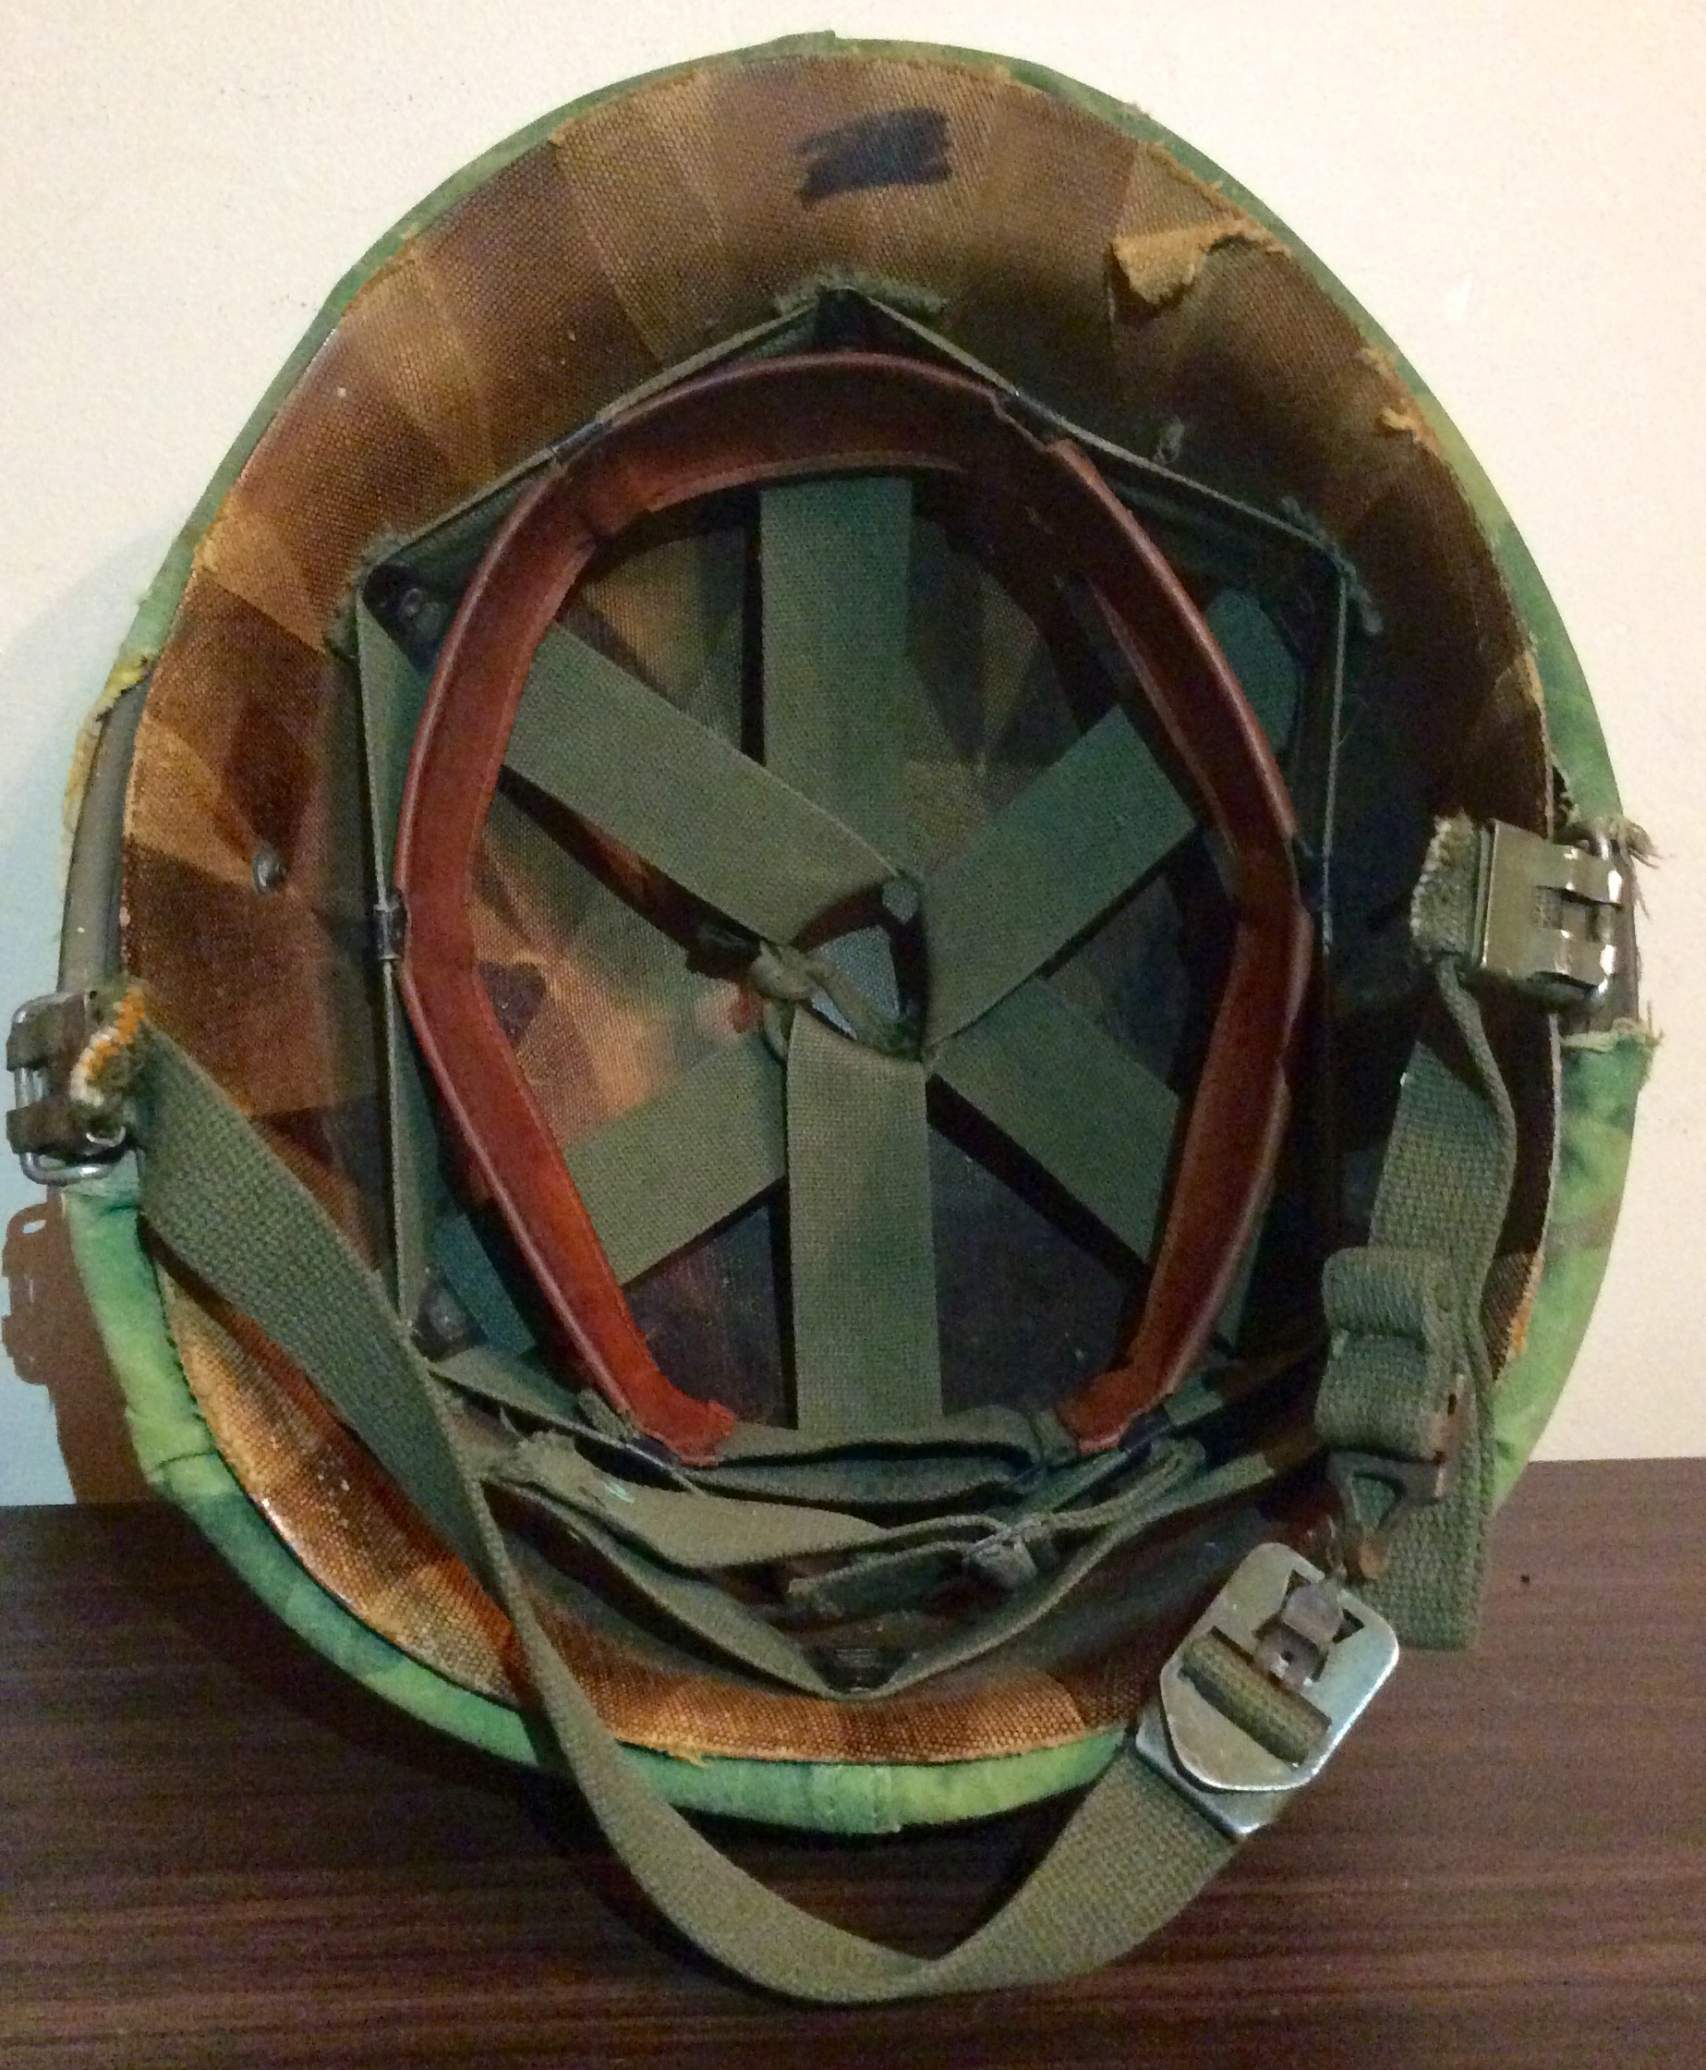 Us m1 helmet dating